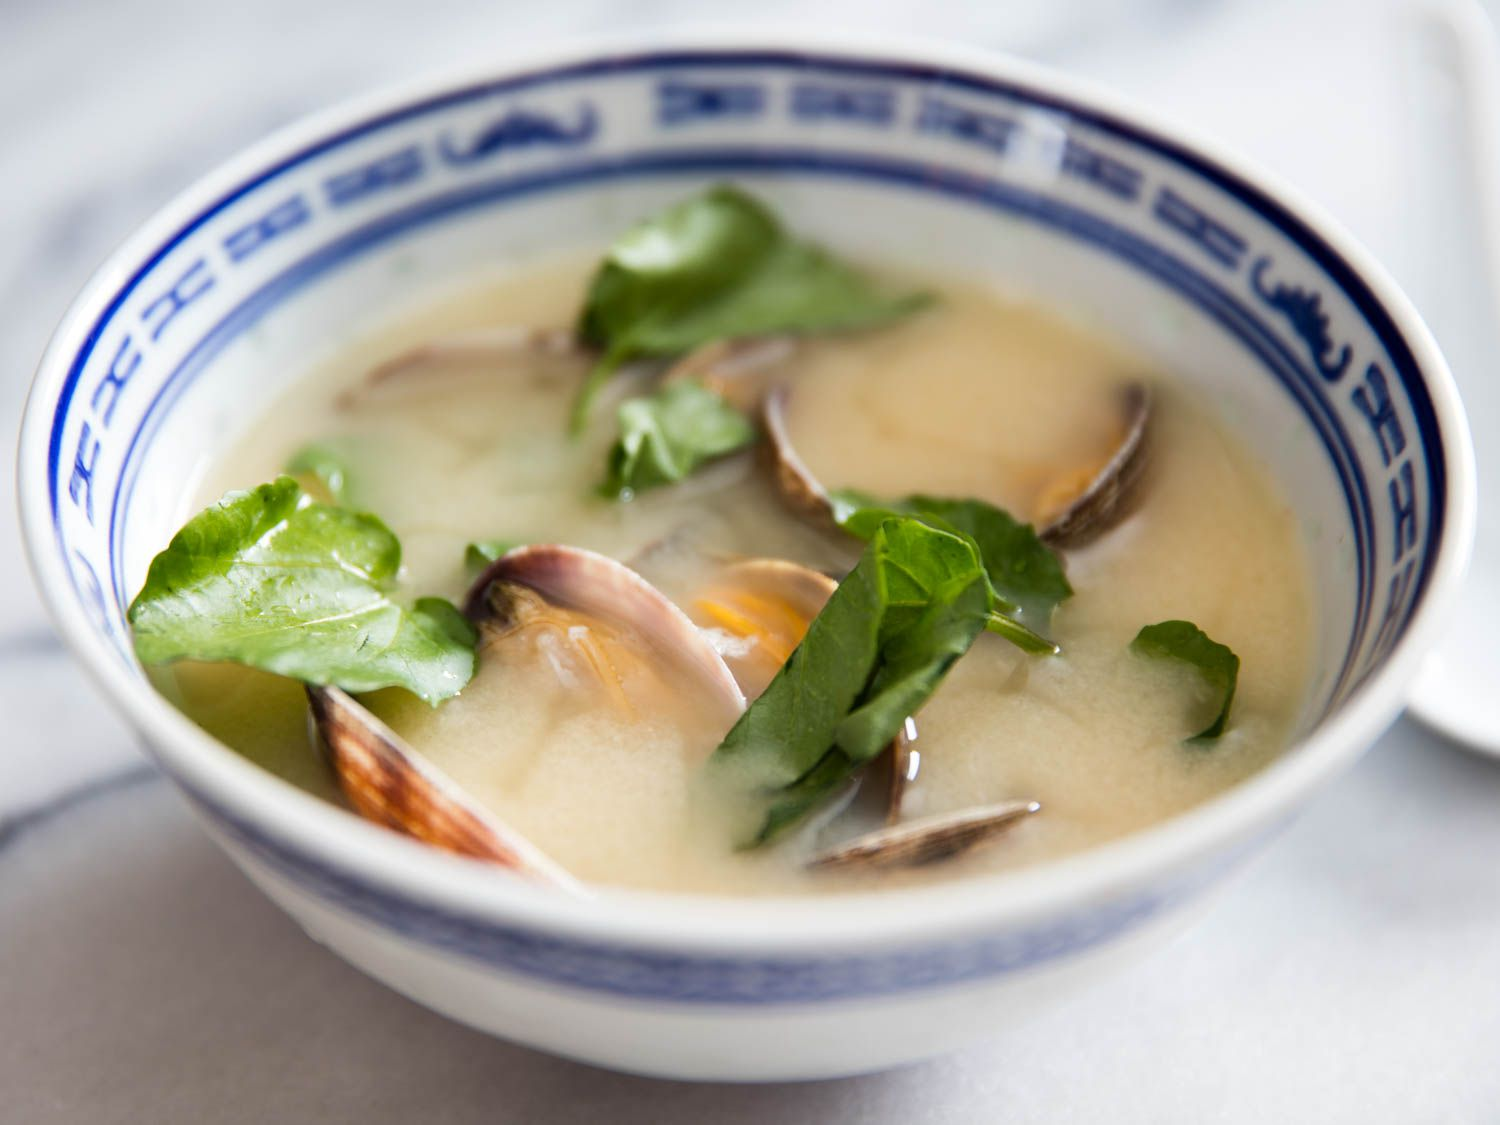 20160302-miso-soups-feature-vicky-wasik-7-2.jpg